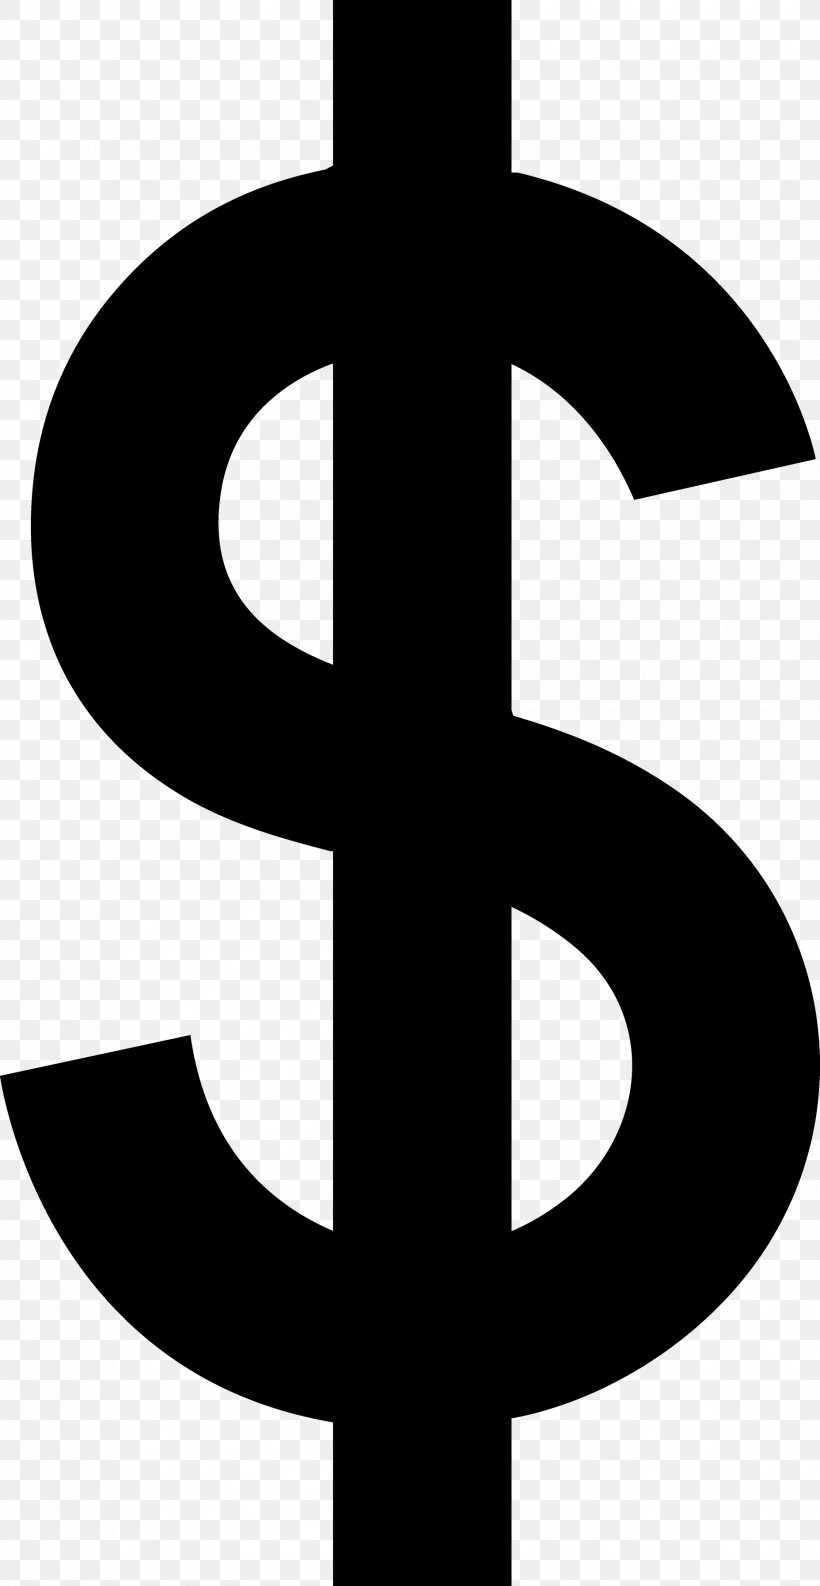 Dollar Sign Currency Symbol Clip Art, PNG, 1856x3590px.